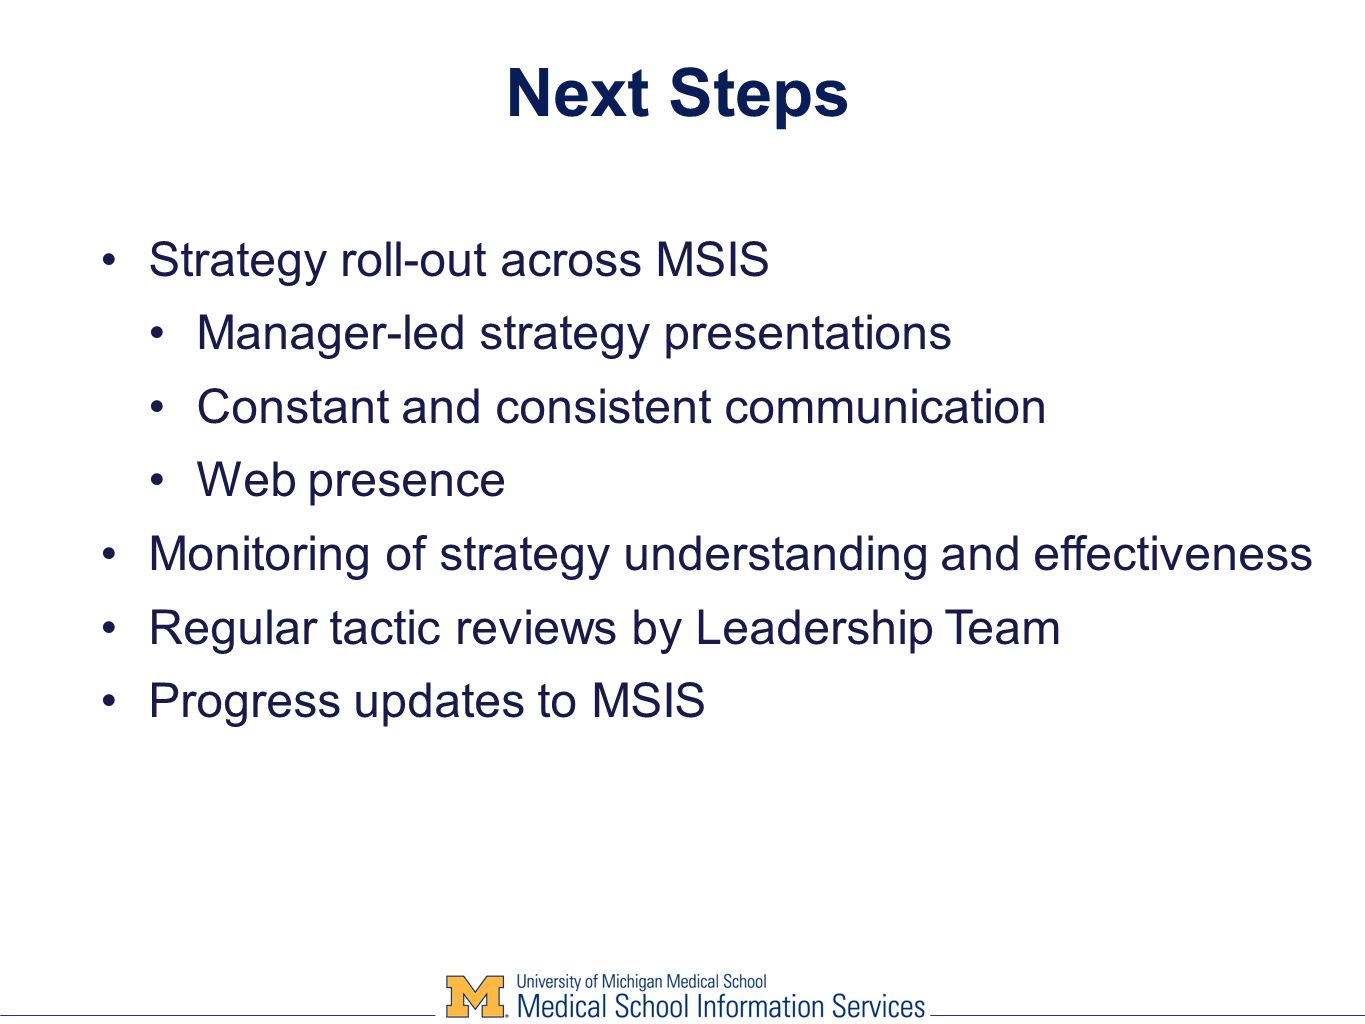 Next Steps Strategy roll-out across MSIS Manager-led strategy presentations Constant and consistent communication Web presence Monitoring of strategy understanding and effectiveness Regular tactic reviews by Leadership Team Progress updates to MSIS